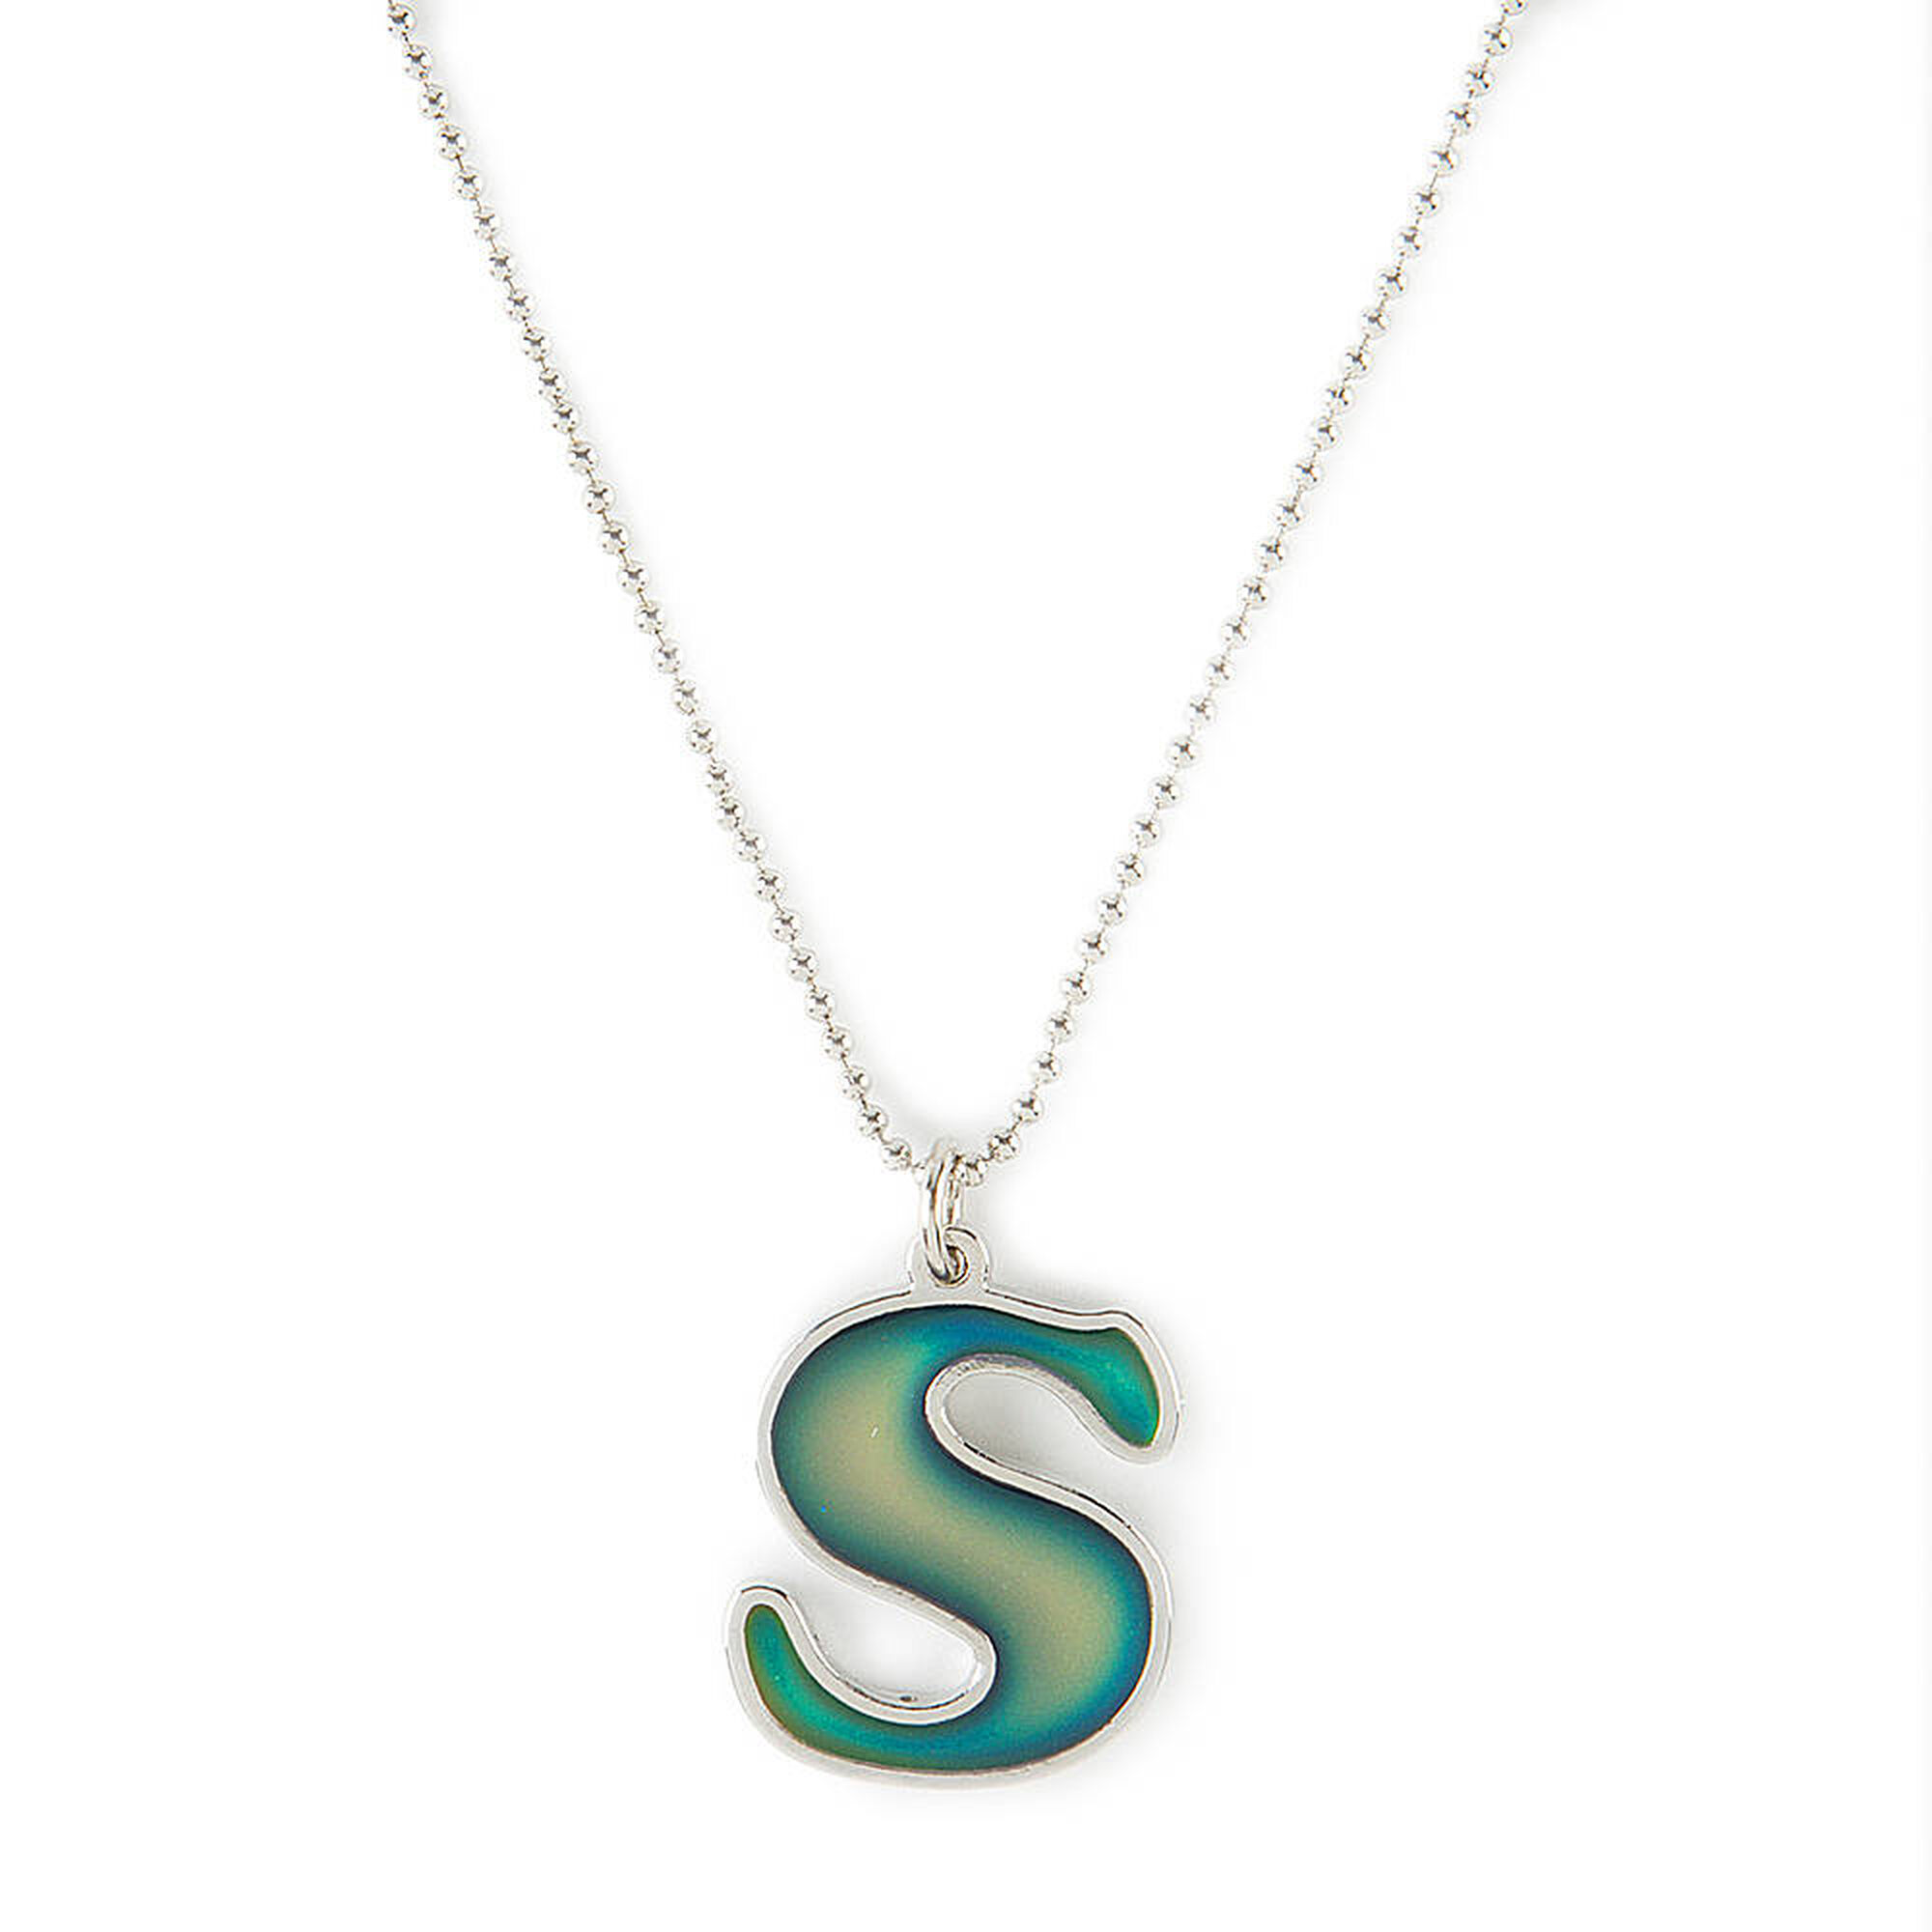 Mood initial s pendant necklace claires us mood initial s pendant necklace mozeypictures Image collections